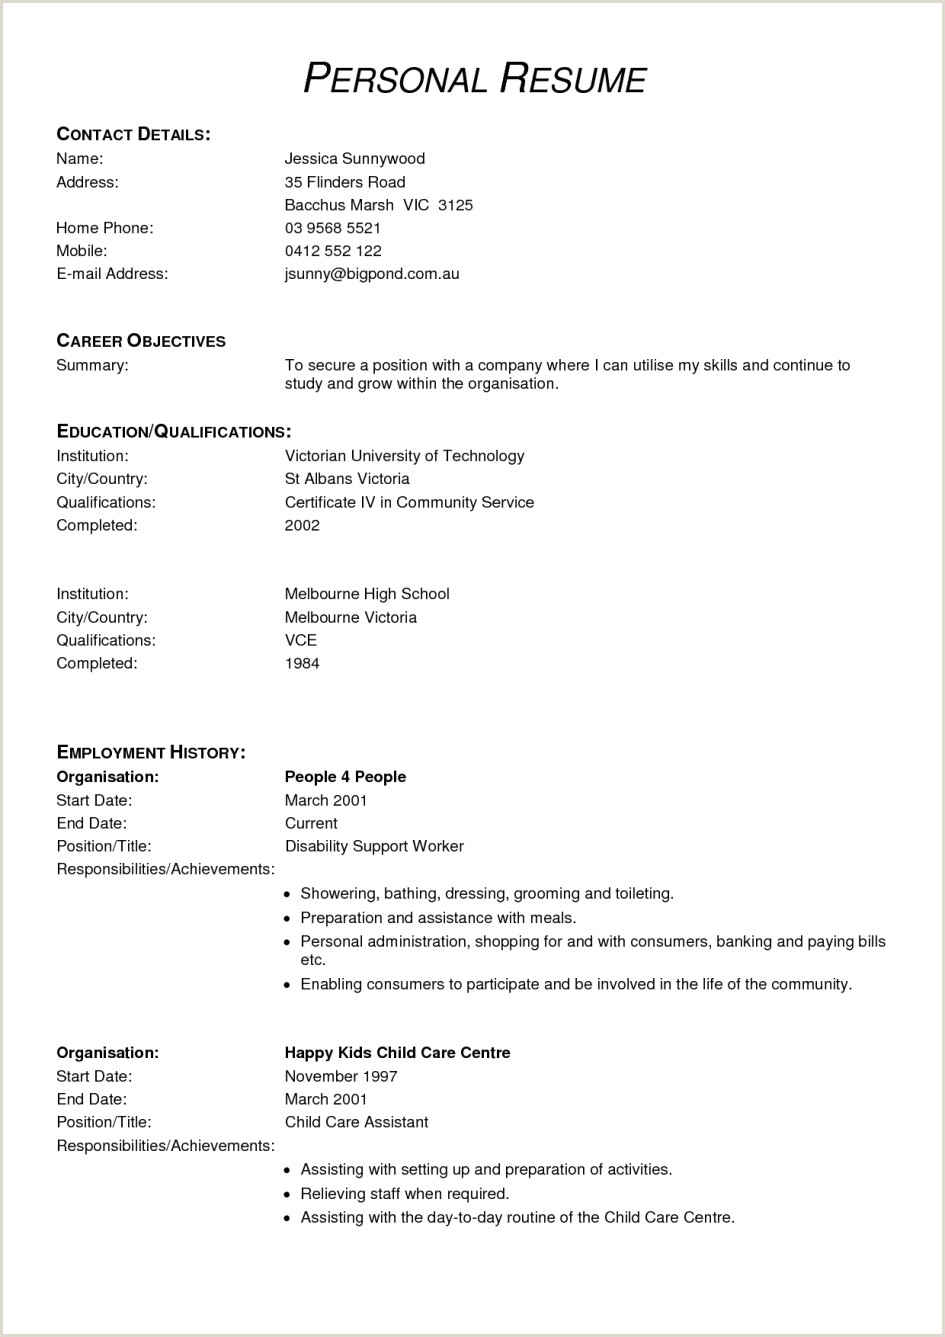 Resume format for Job Receptionist Medical Receptionist Job Description Template